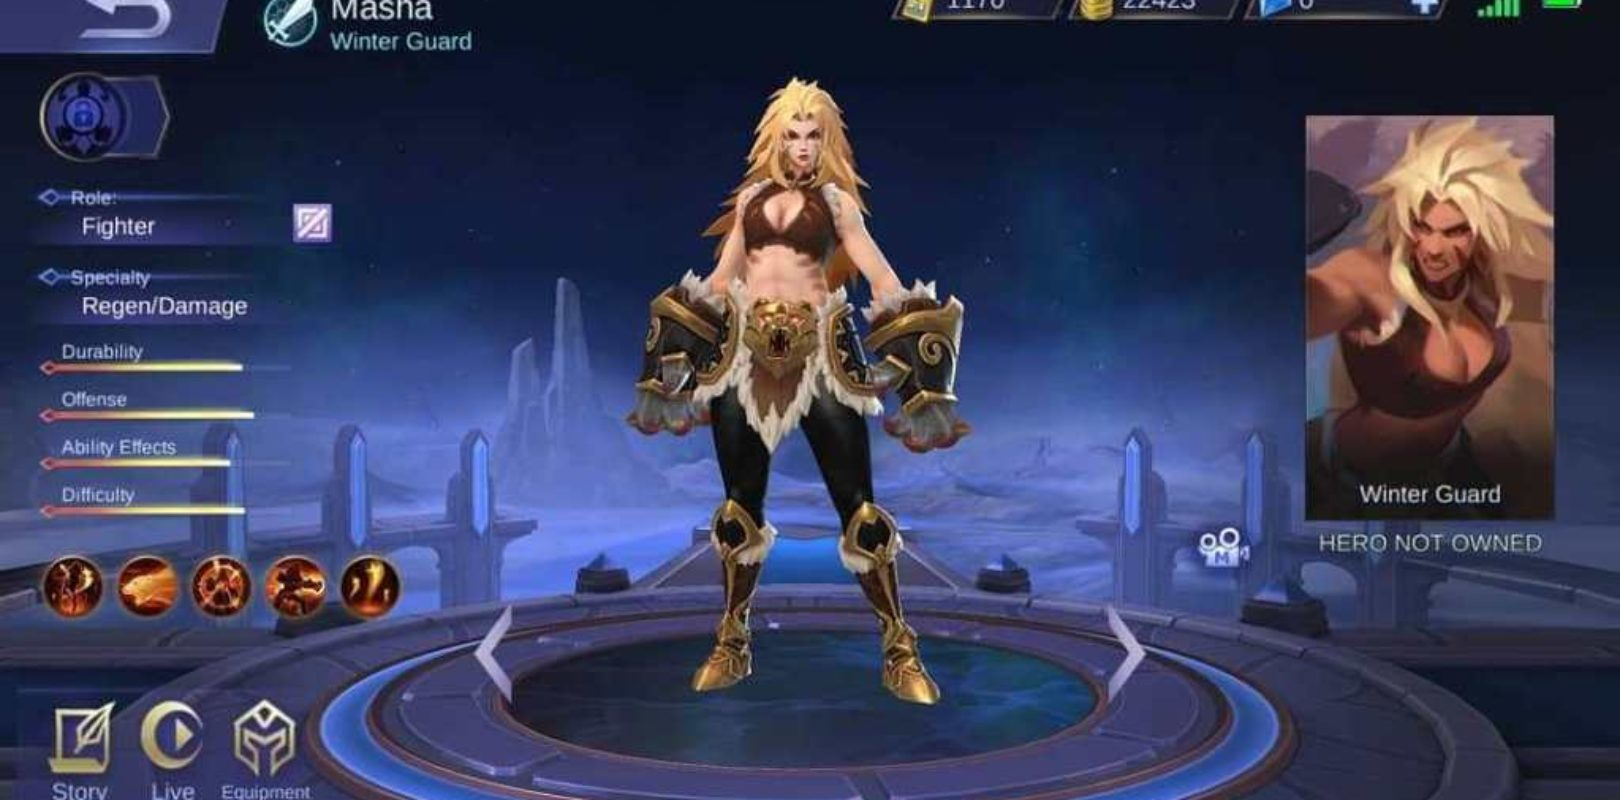 Mobile Legends – 1 3 94 Patch Notes | NEW HERO MASHA ! - All